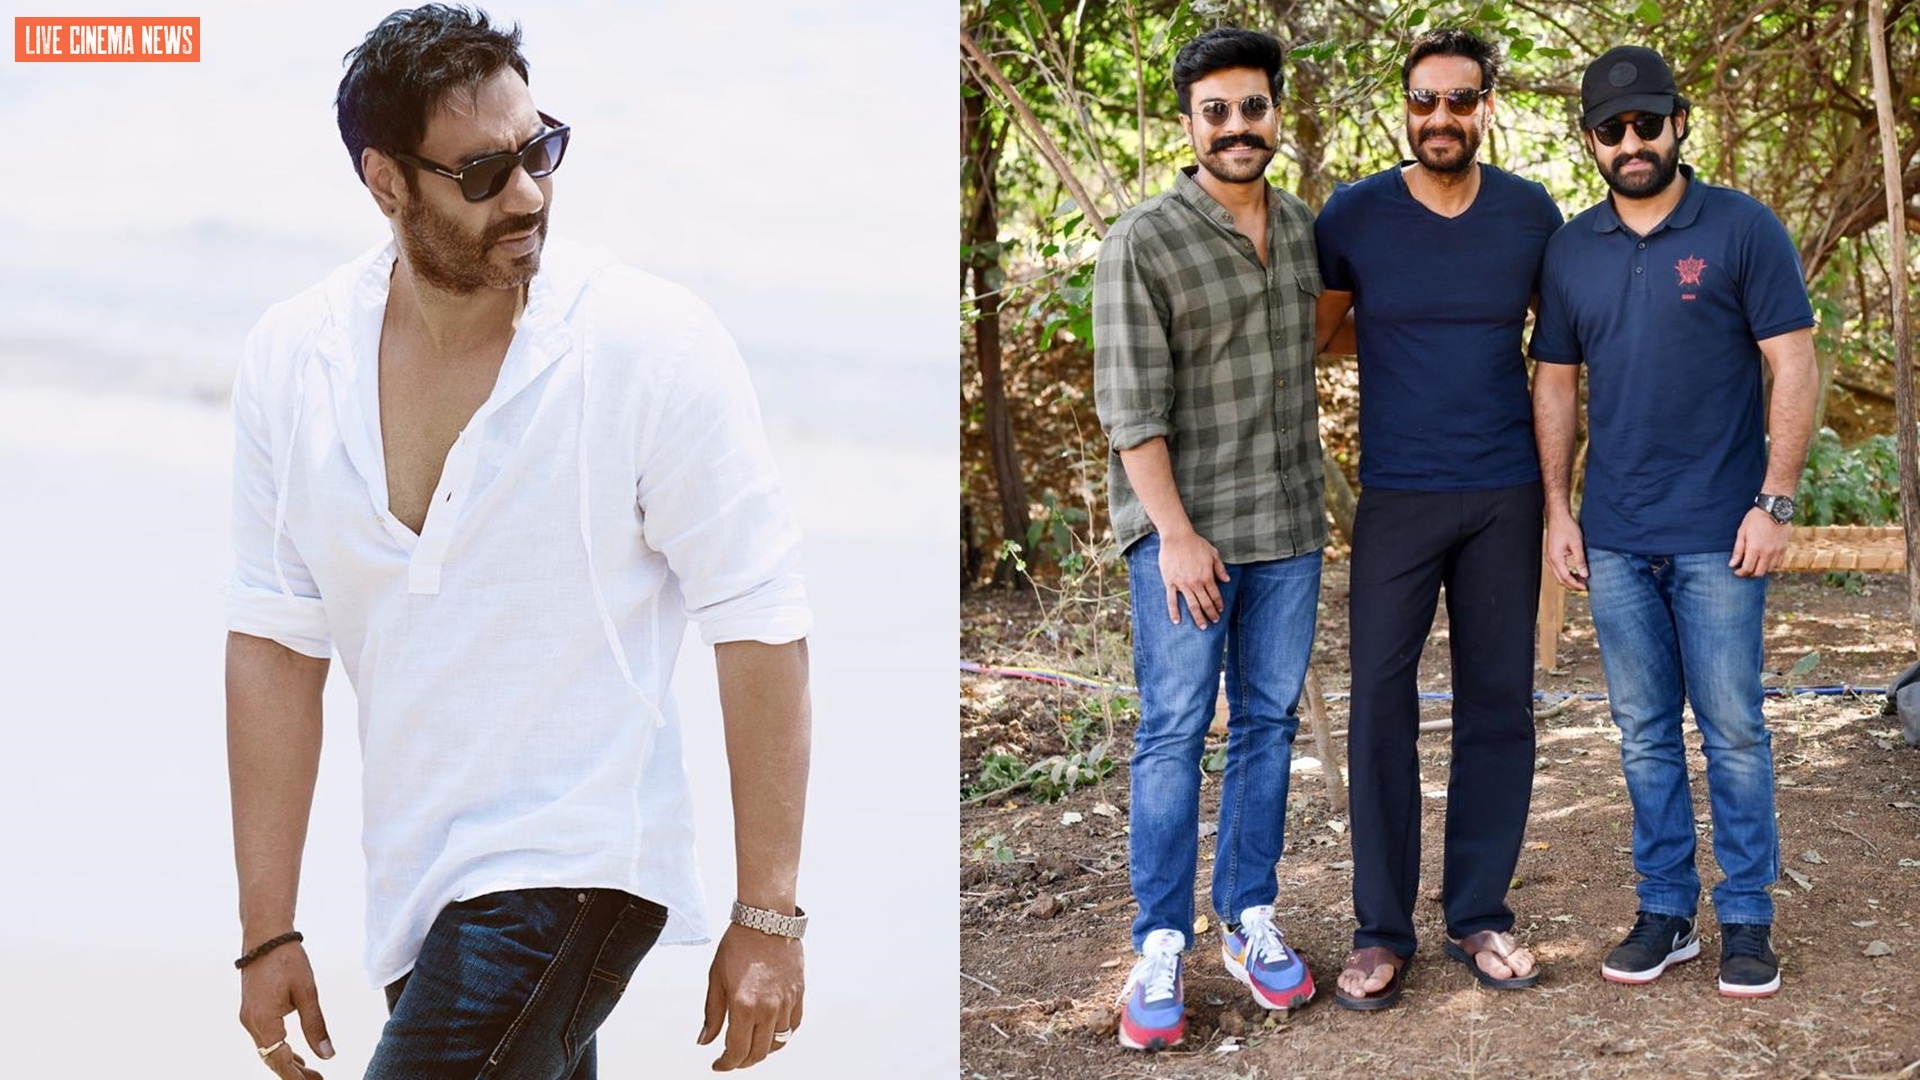 Ajay Devgn's optimistic note: The stylish picture with caption